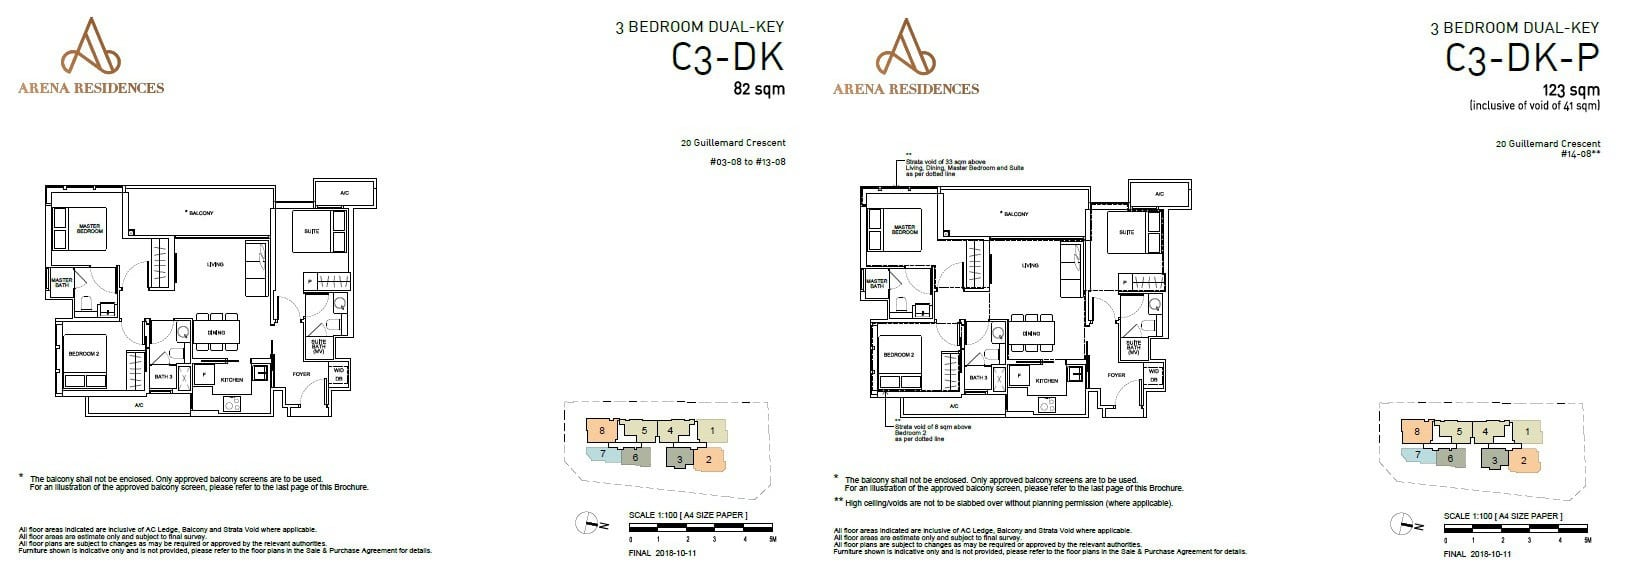 Arena Residences Guillemard - Floor Plan 3Bedroom Dual Key